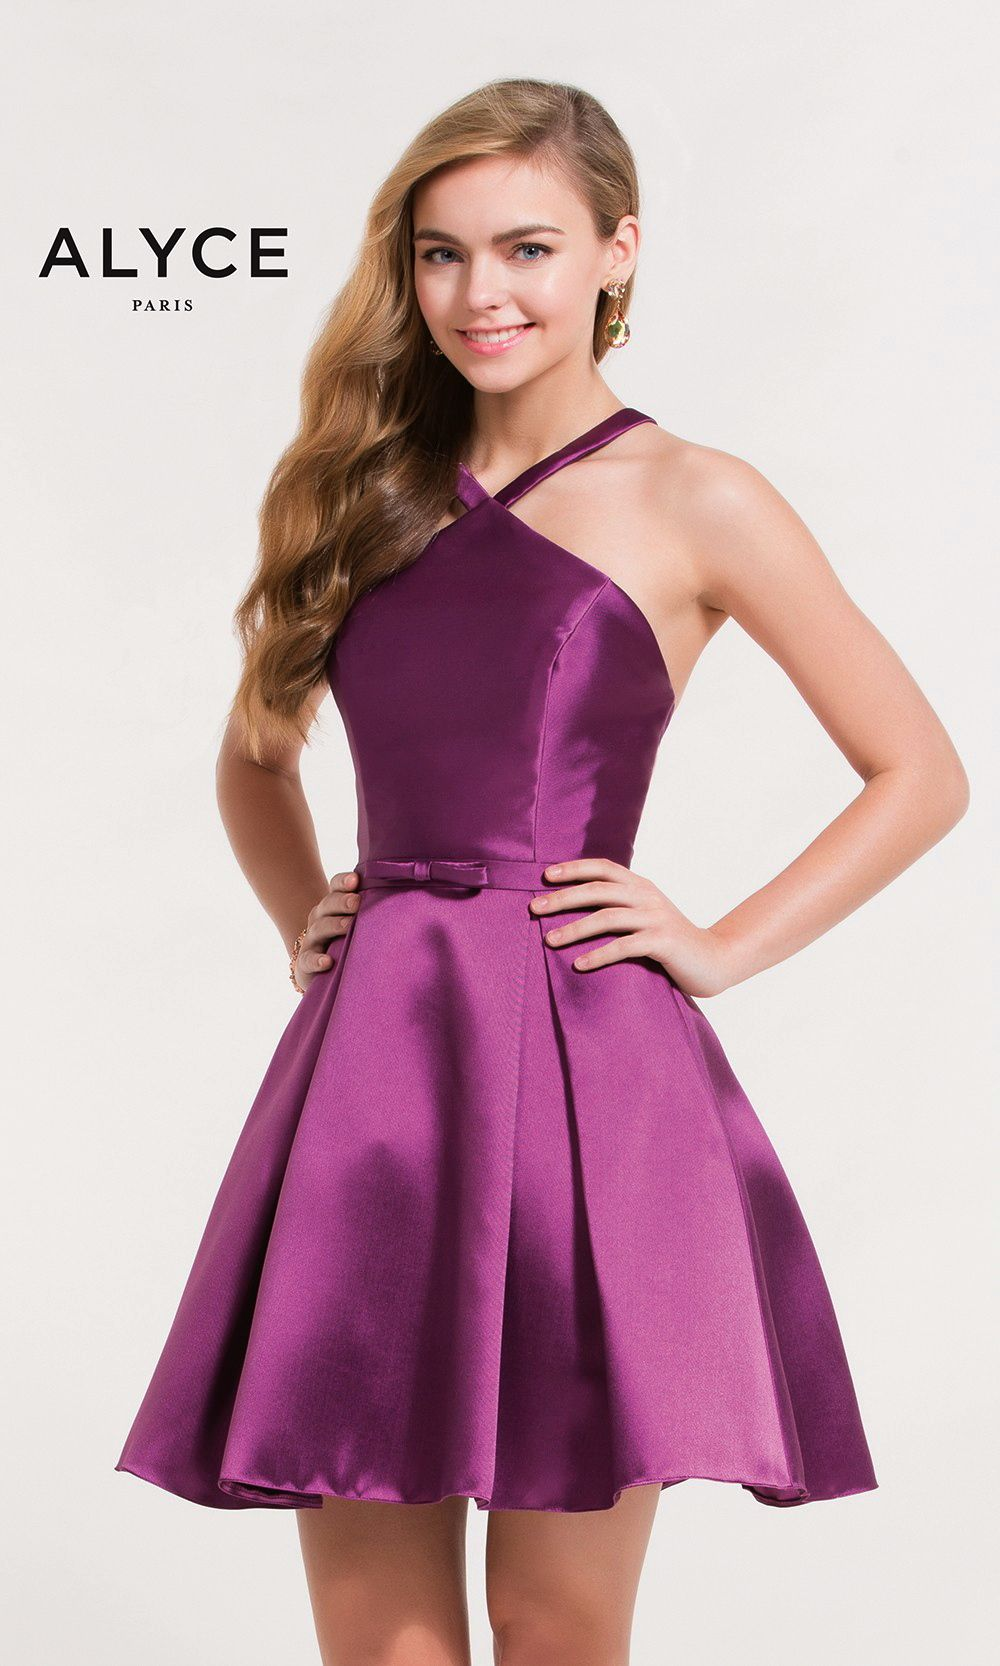 da69aafa20 Short Evening Dresses Homecoming Dresses by ALYCE PARIS aay3702 Short halter  top mikado dress with small detailed bow at waist and strappy open back.